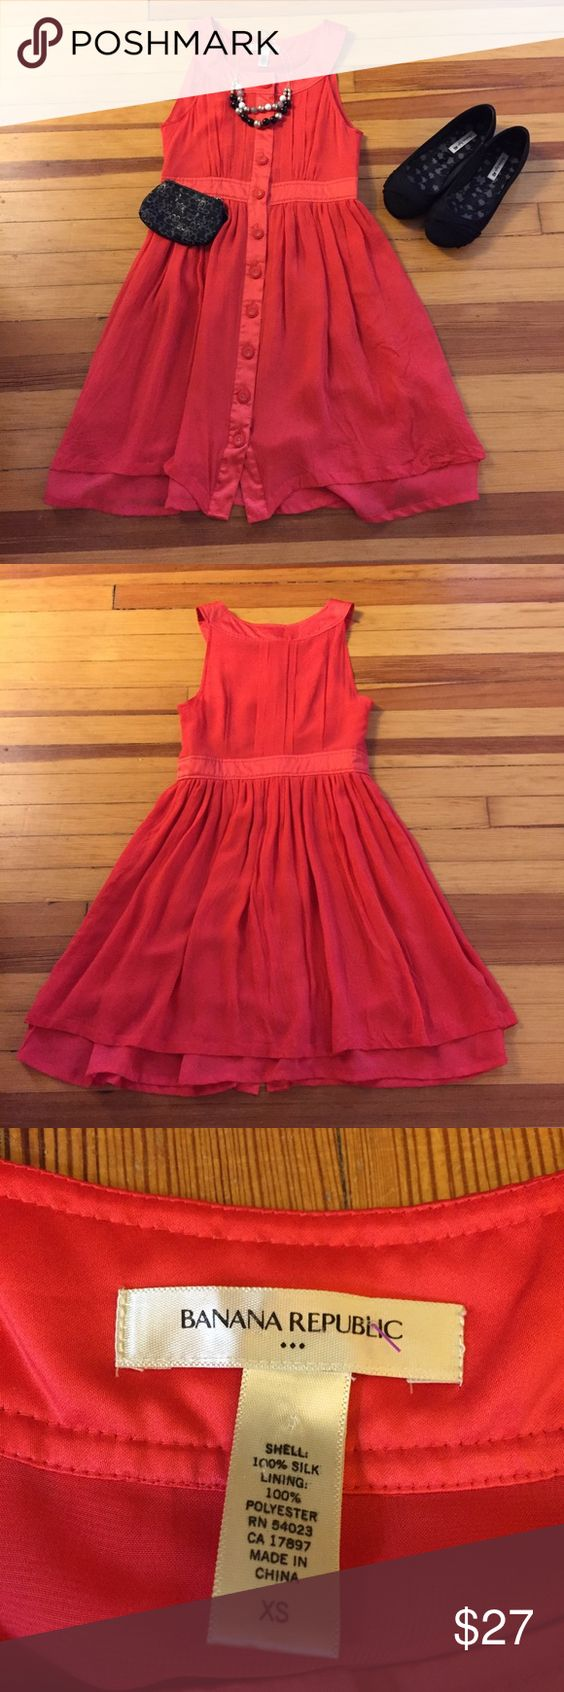 """Banana Republic red sleeveless crepe dress sz XS ▫️Banana Republic red sleeveless a-line dress sz XS ▫️crepe like material ▫️10 fully functional buttons along the center front ▫️no zipper ▫️small dirt stain on the interior lining ▫️shell = 100% silk; lining = 100% polyester ▫️bust = 31""""; waist = 26""""; Length = 31"""" Banana Republic Dresses Midi"""